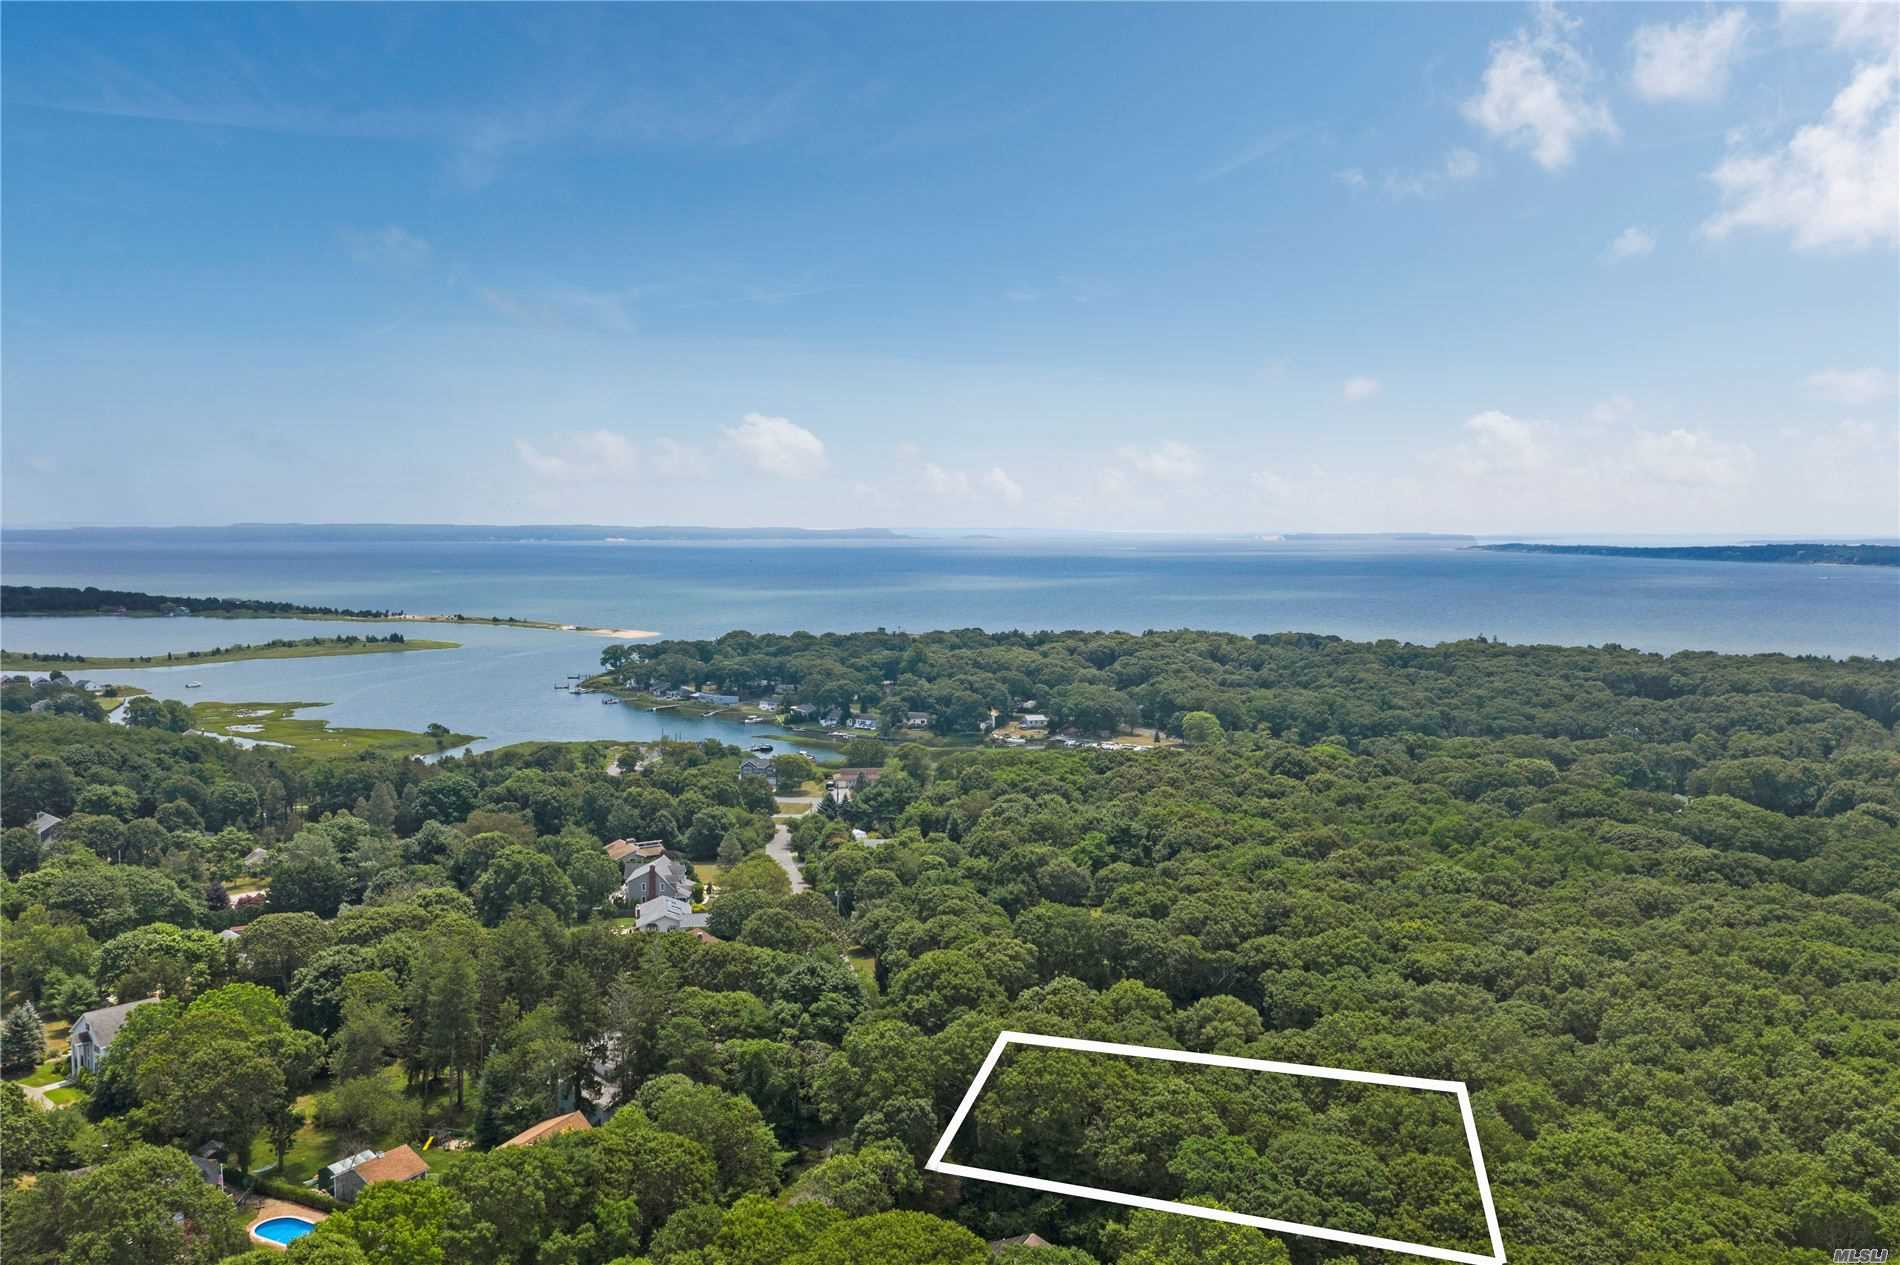 300 Corey Creek Ln - Southold, New York